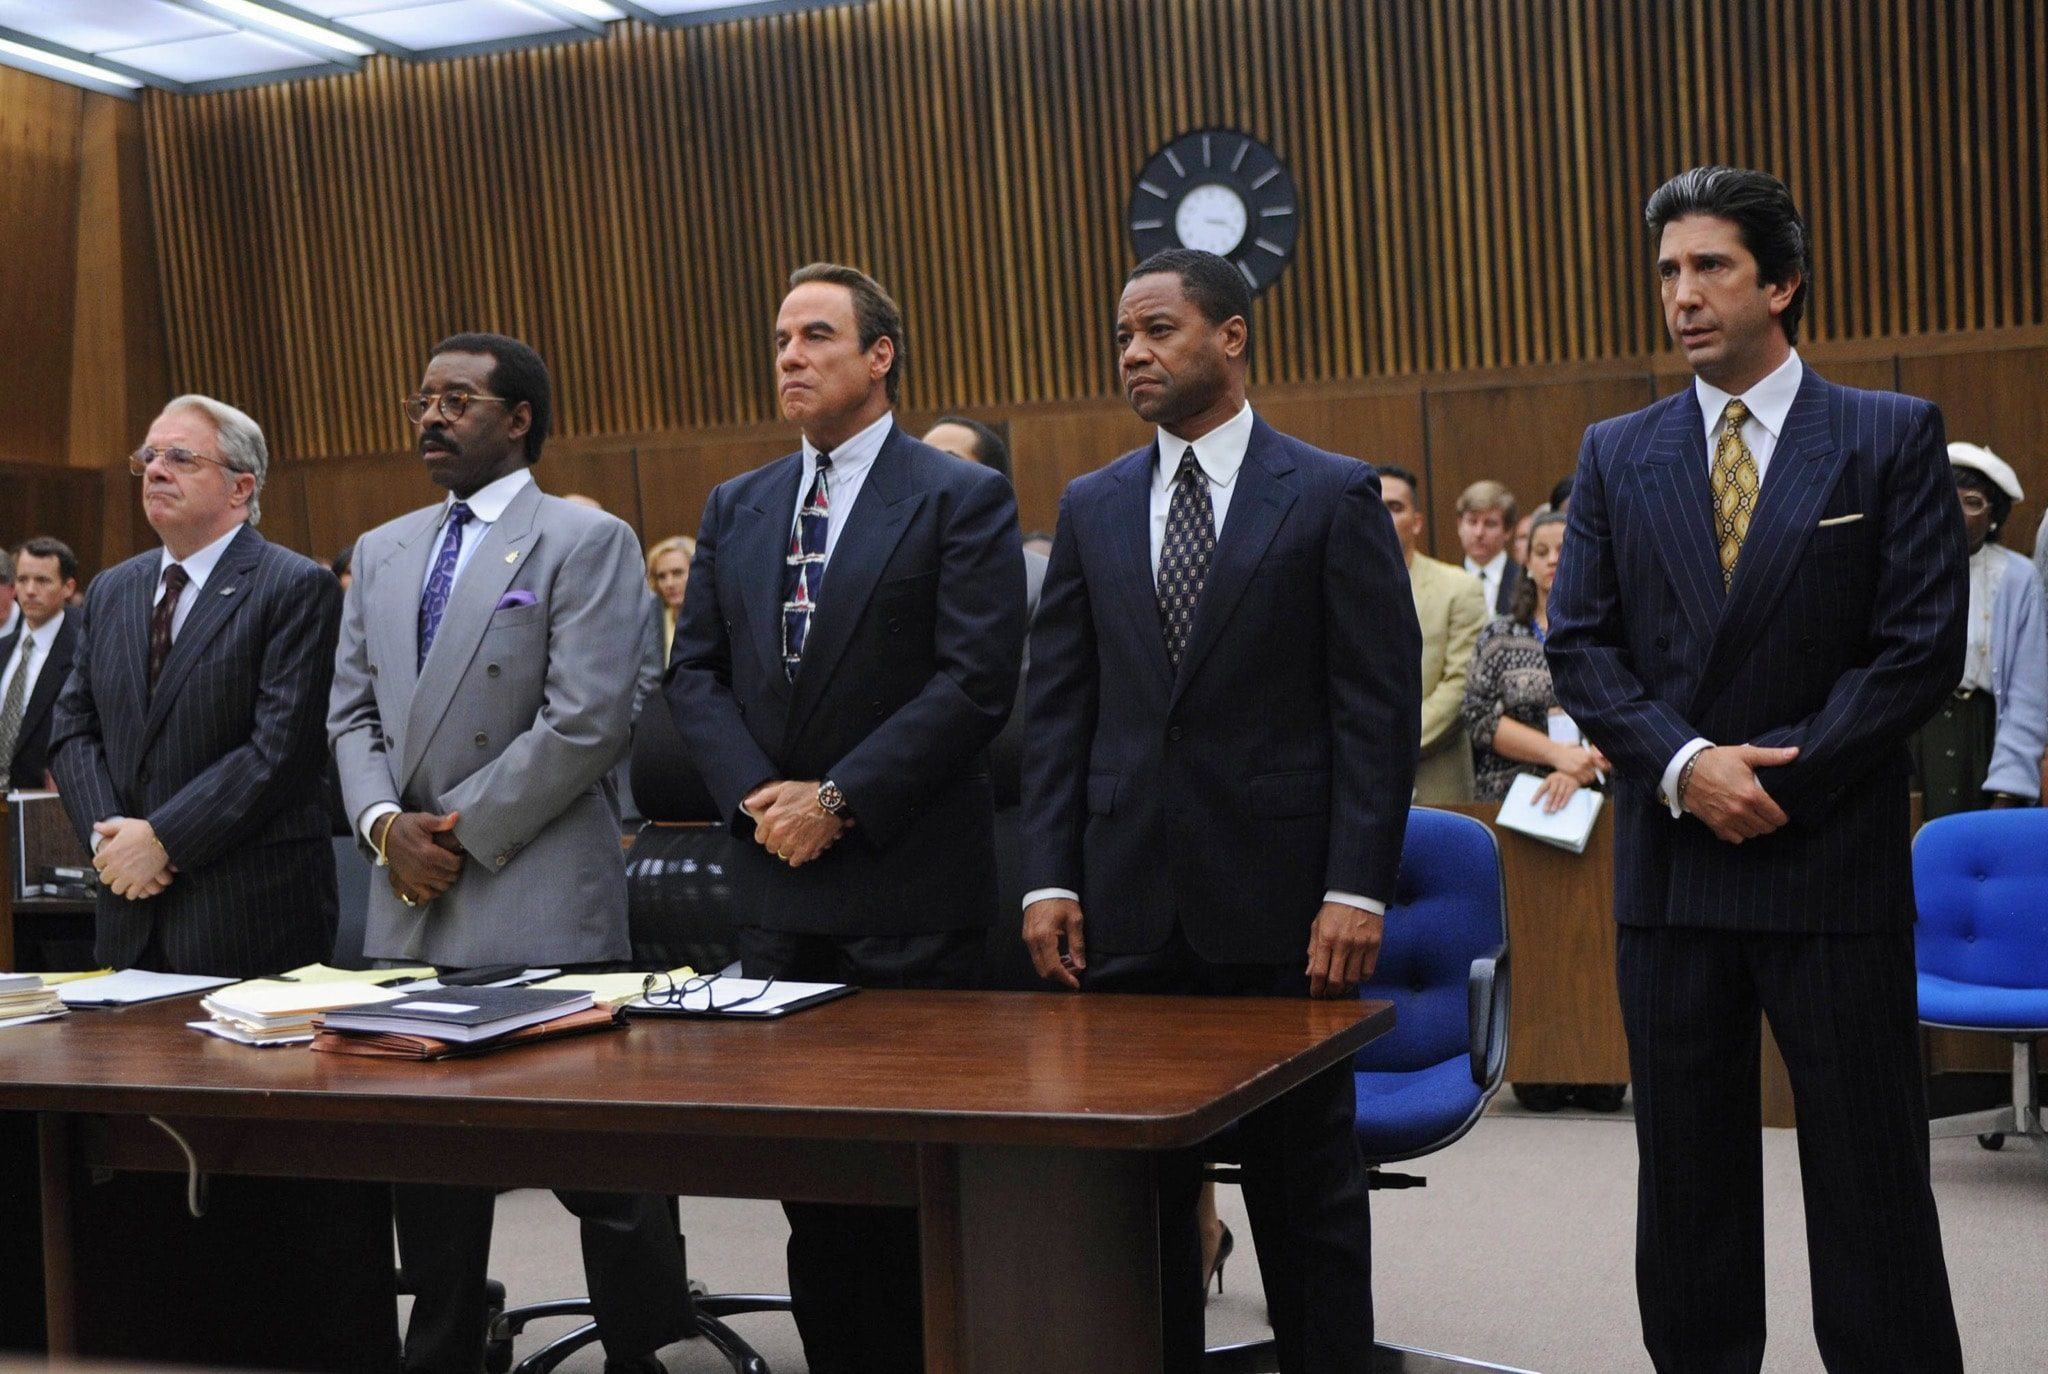 the-people-v-oj-simpson-american-crime-story-image-episode-4